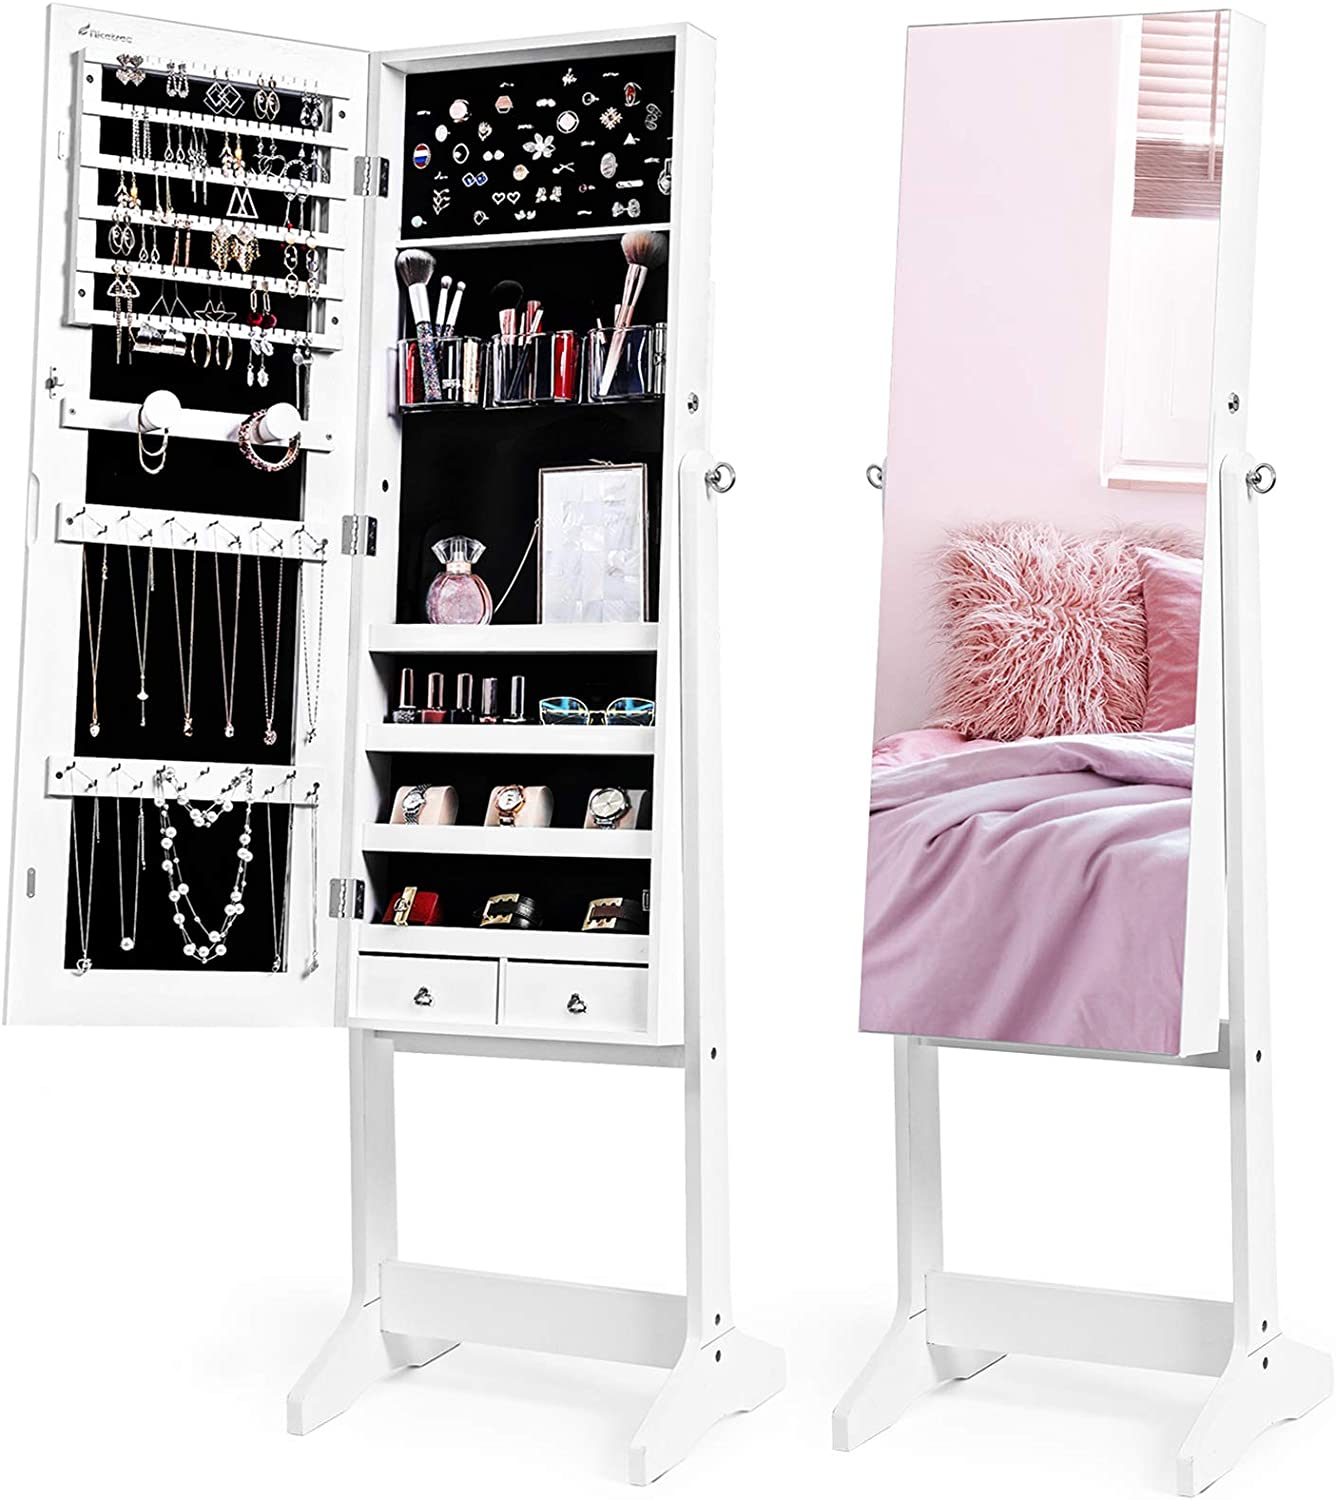 Nicetree Jewelry Cabinet with Full-Length Mirror, Standing Lockable Jewelry Armoire Organizer, 3 Angel Adjustable (White)